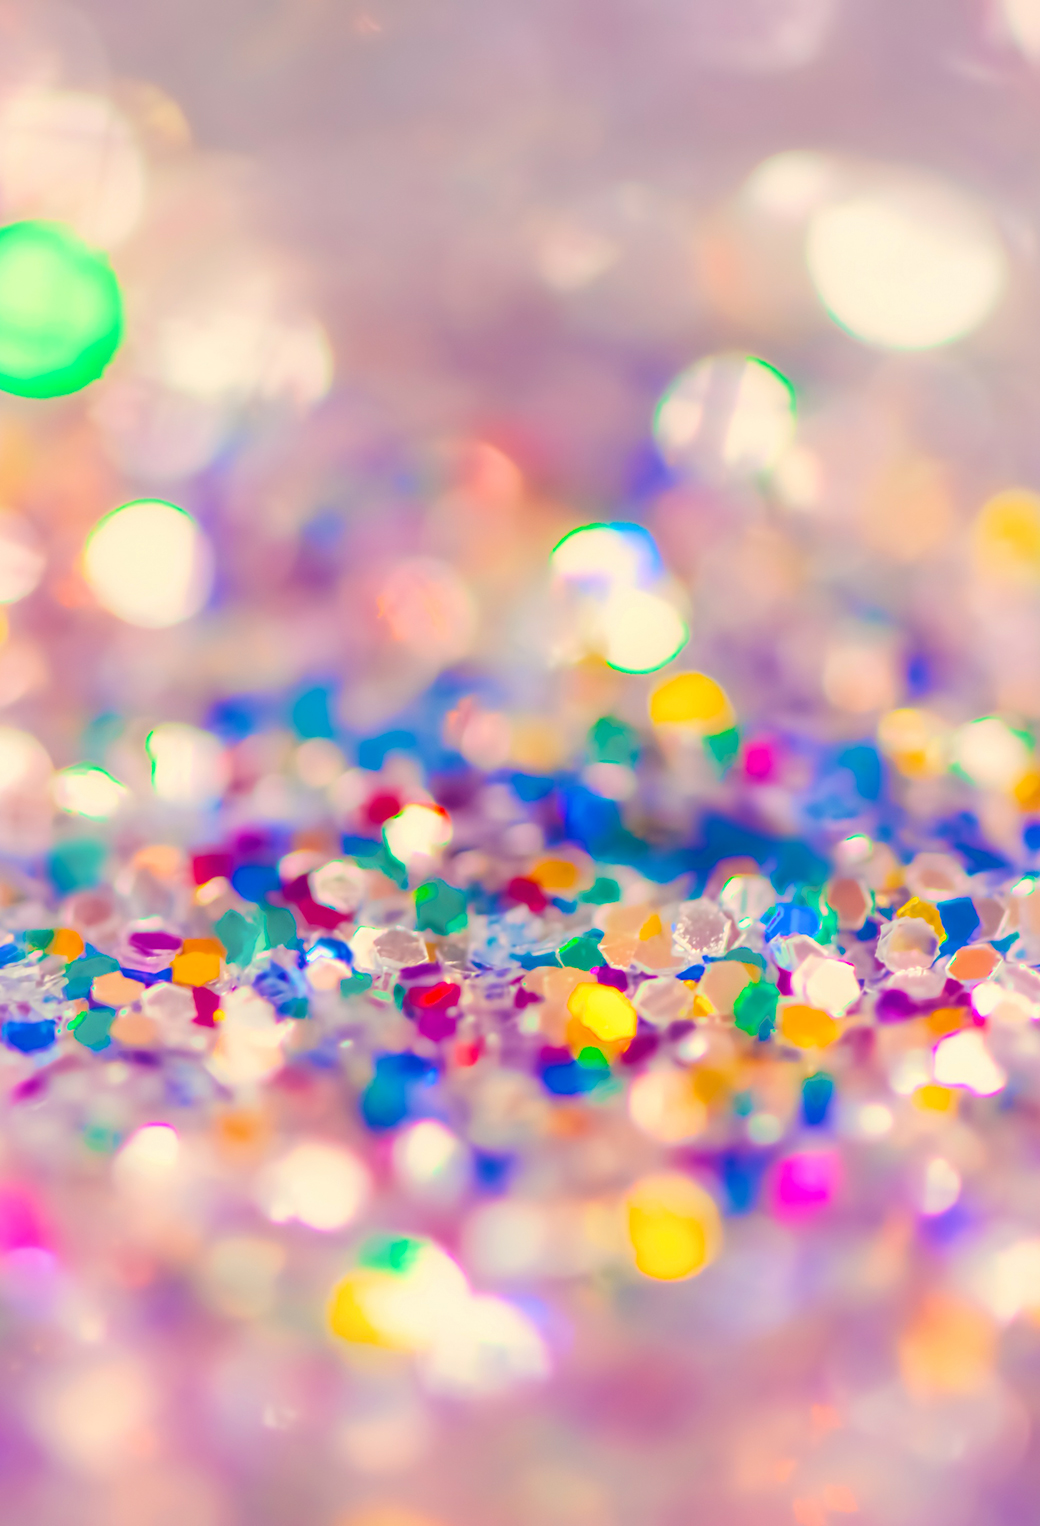 Colorful Glitter 3Wallpapers iPhone Parallax Colorful Glitter